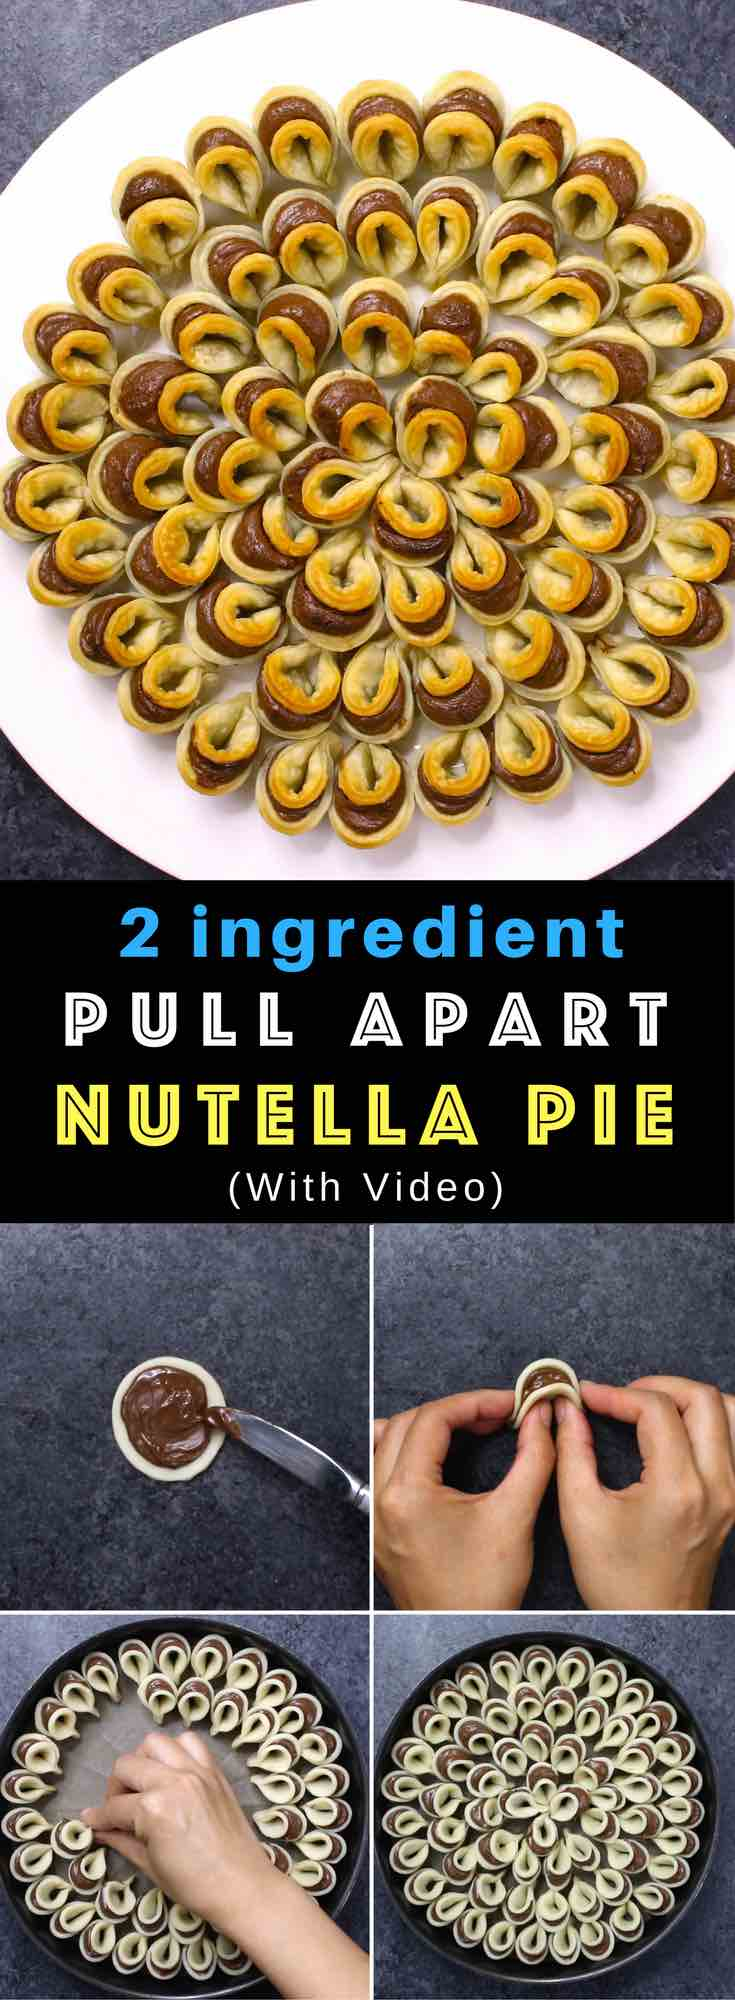 Easy Nutella Pie Pull Apart – A beautiful pull apart pie with only 2 ingredients: pie crust and Nutella. Great for sharing at a party. So good! Simple and easy recipe. Vegetarian. Video recipe. #nutellapie #easypierecipe #2ingredients #quickandeasydessertrecipes #quickandeasydessert #videorecipes #vegetarian #easydessert #easycooking #easyrecipe #nutella #pie #fallrecipes #partyrecipes